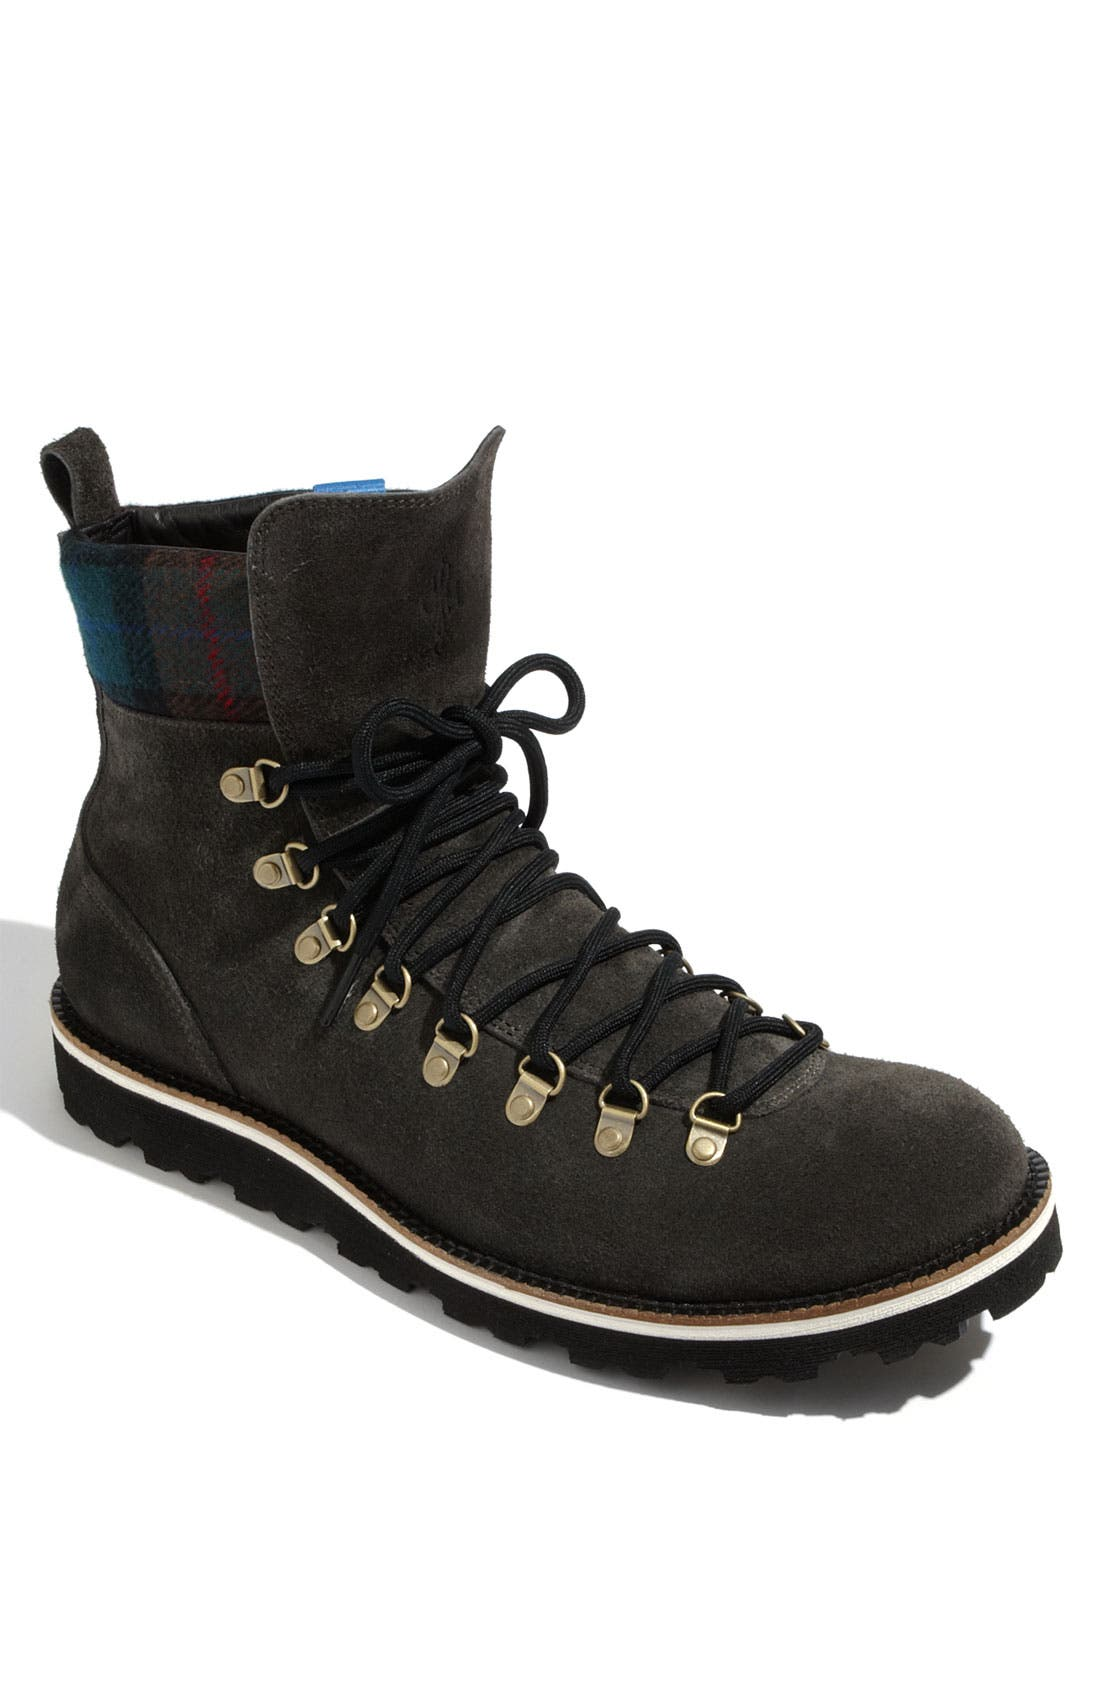 Alternate Image 1 Selected - Cole Haan 'Air Hunter' Hiking Boot (Men)